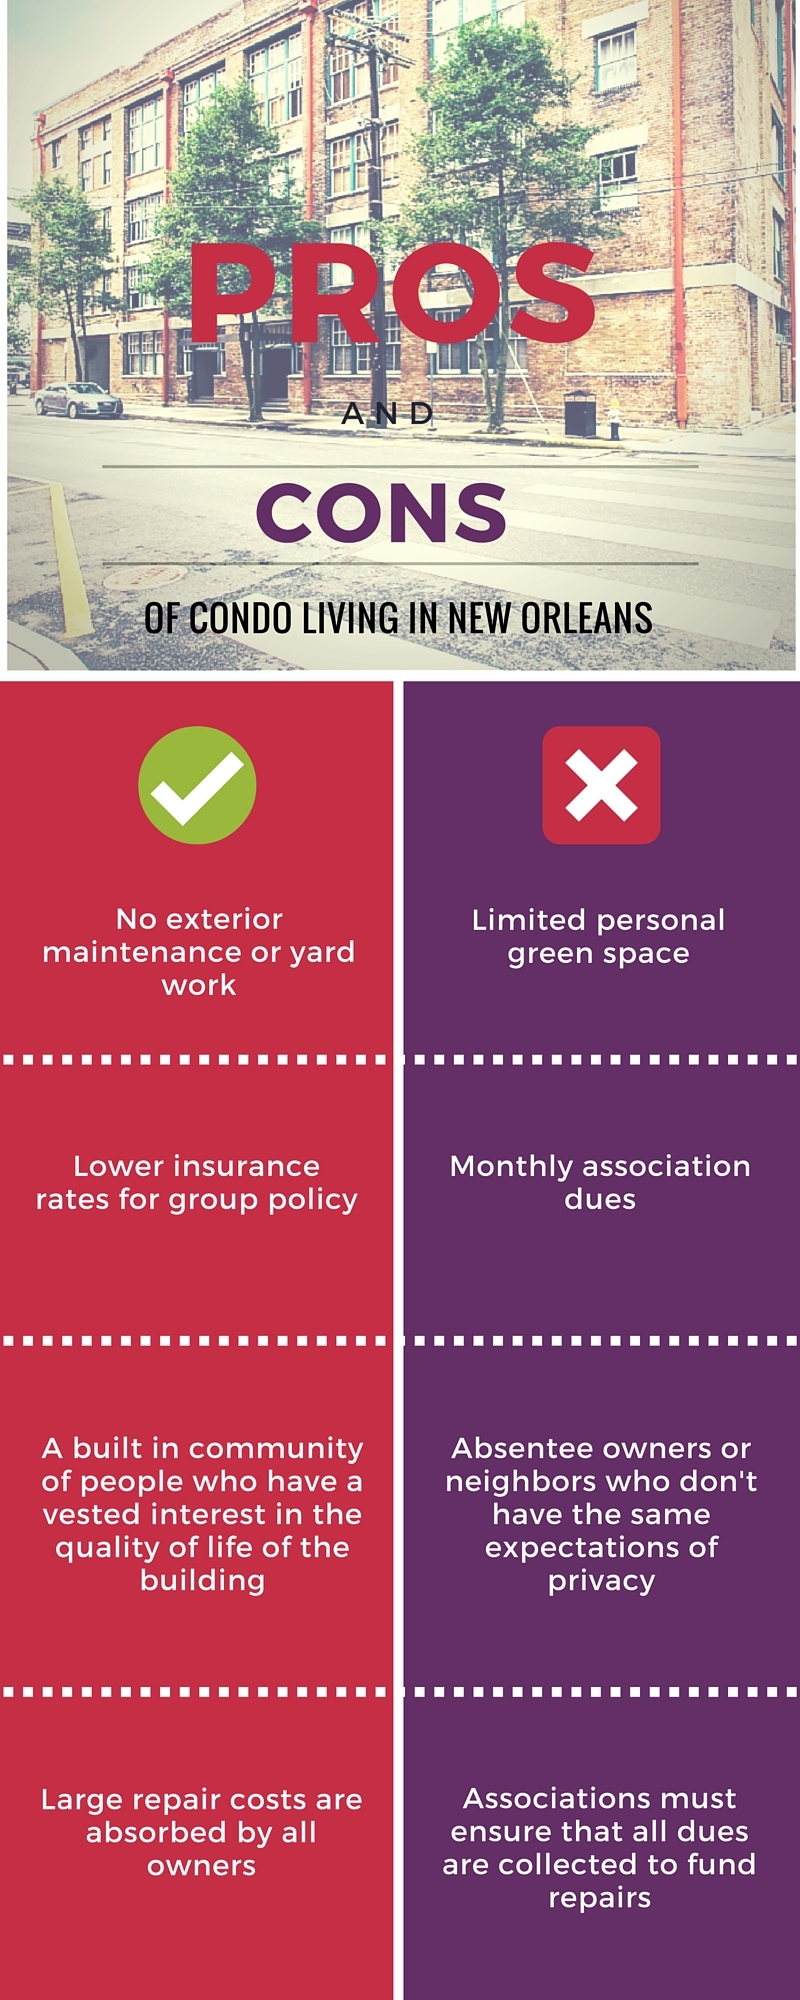 Pros and cons of condo living in new orleans Pros and cons of living in an apartment